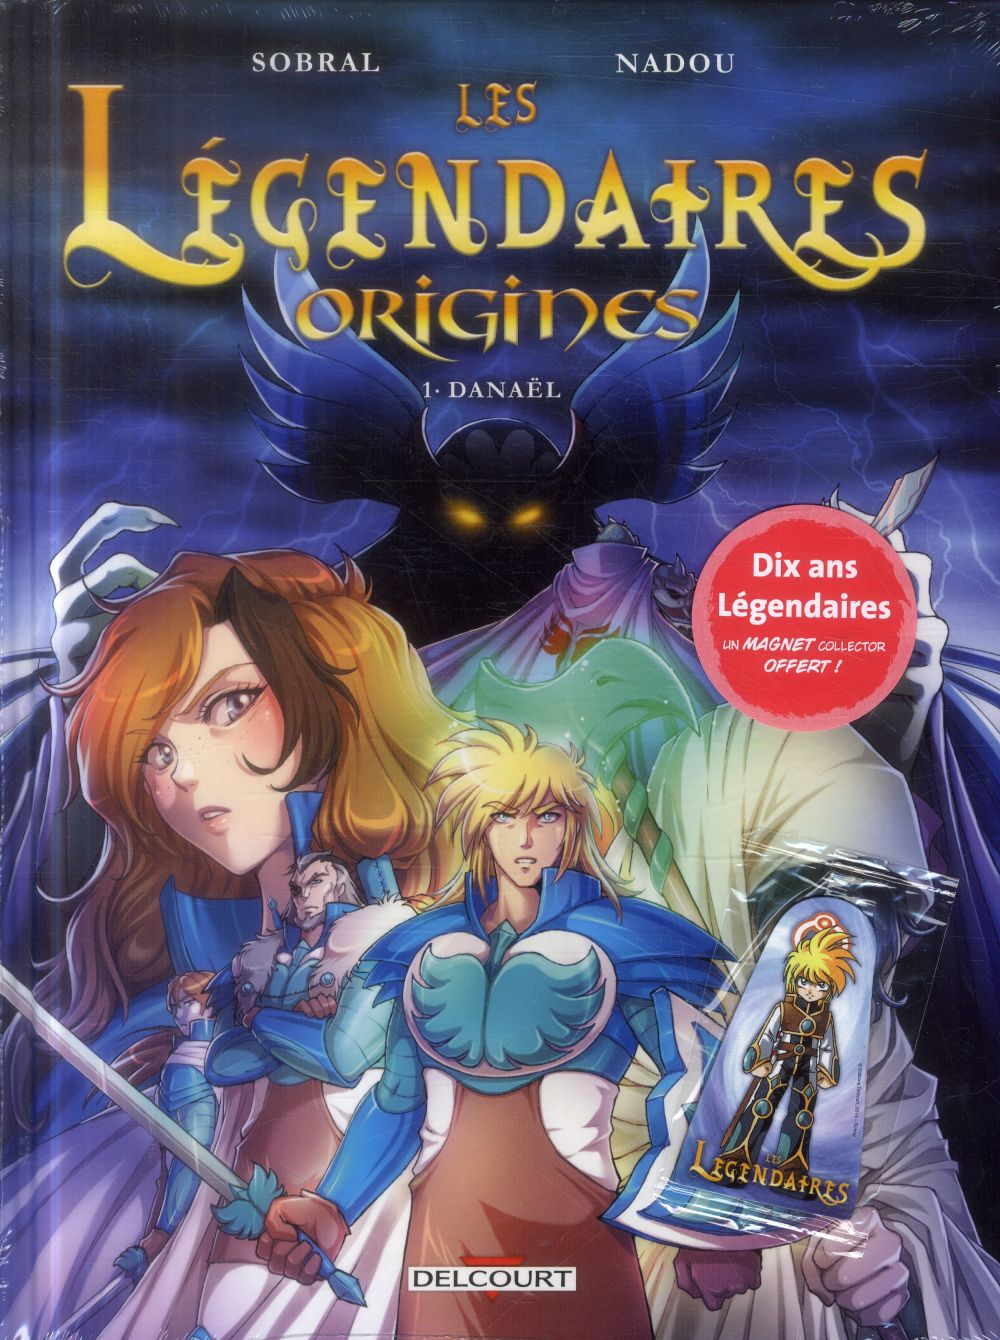 Les Legendaires - Origines T.1 ; Danael